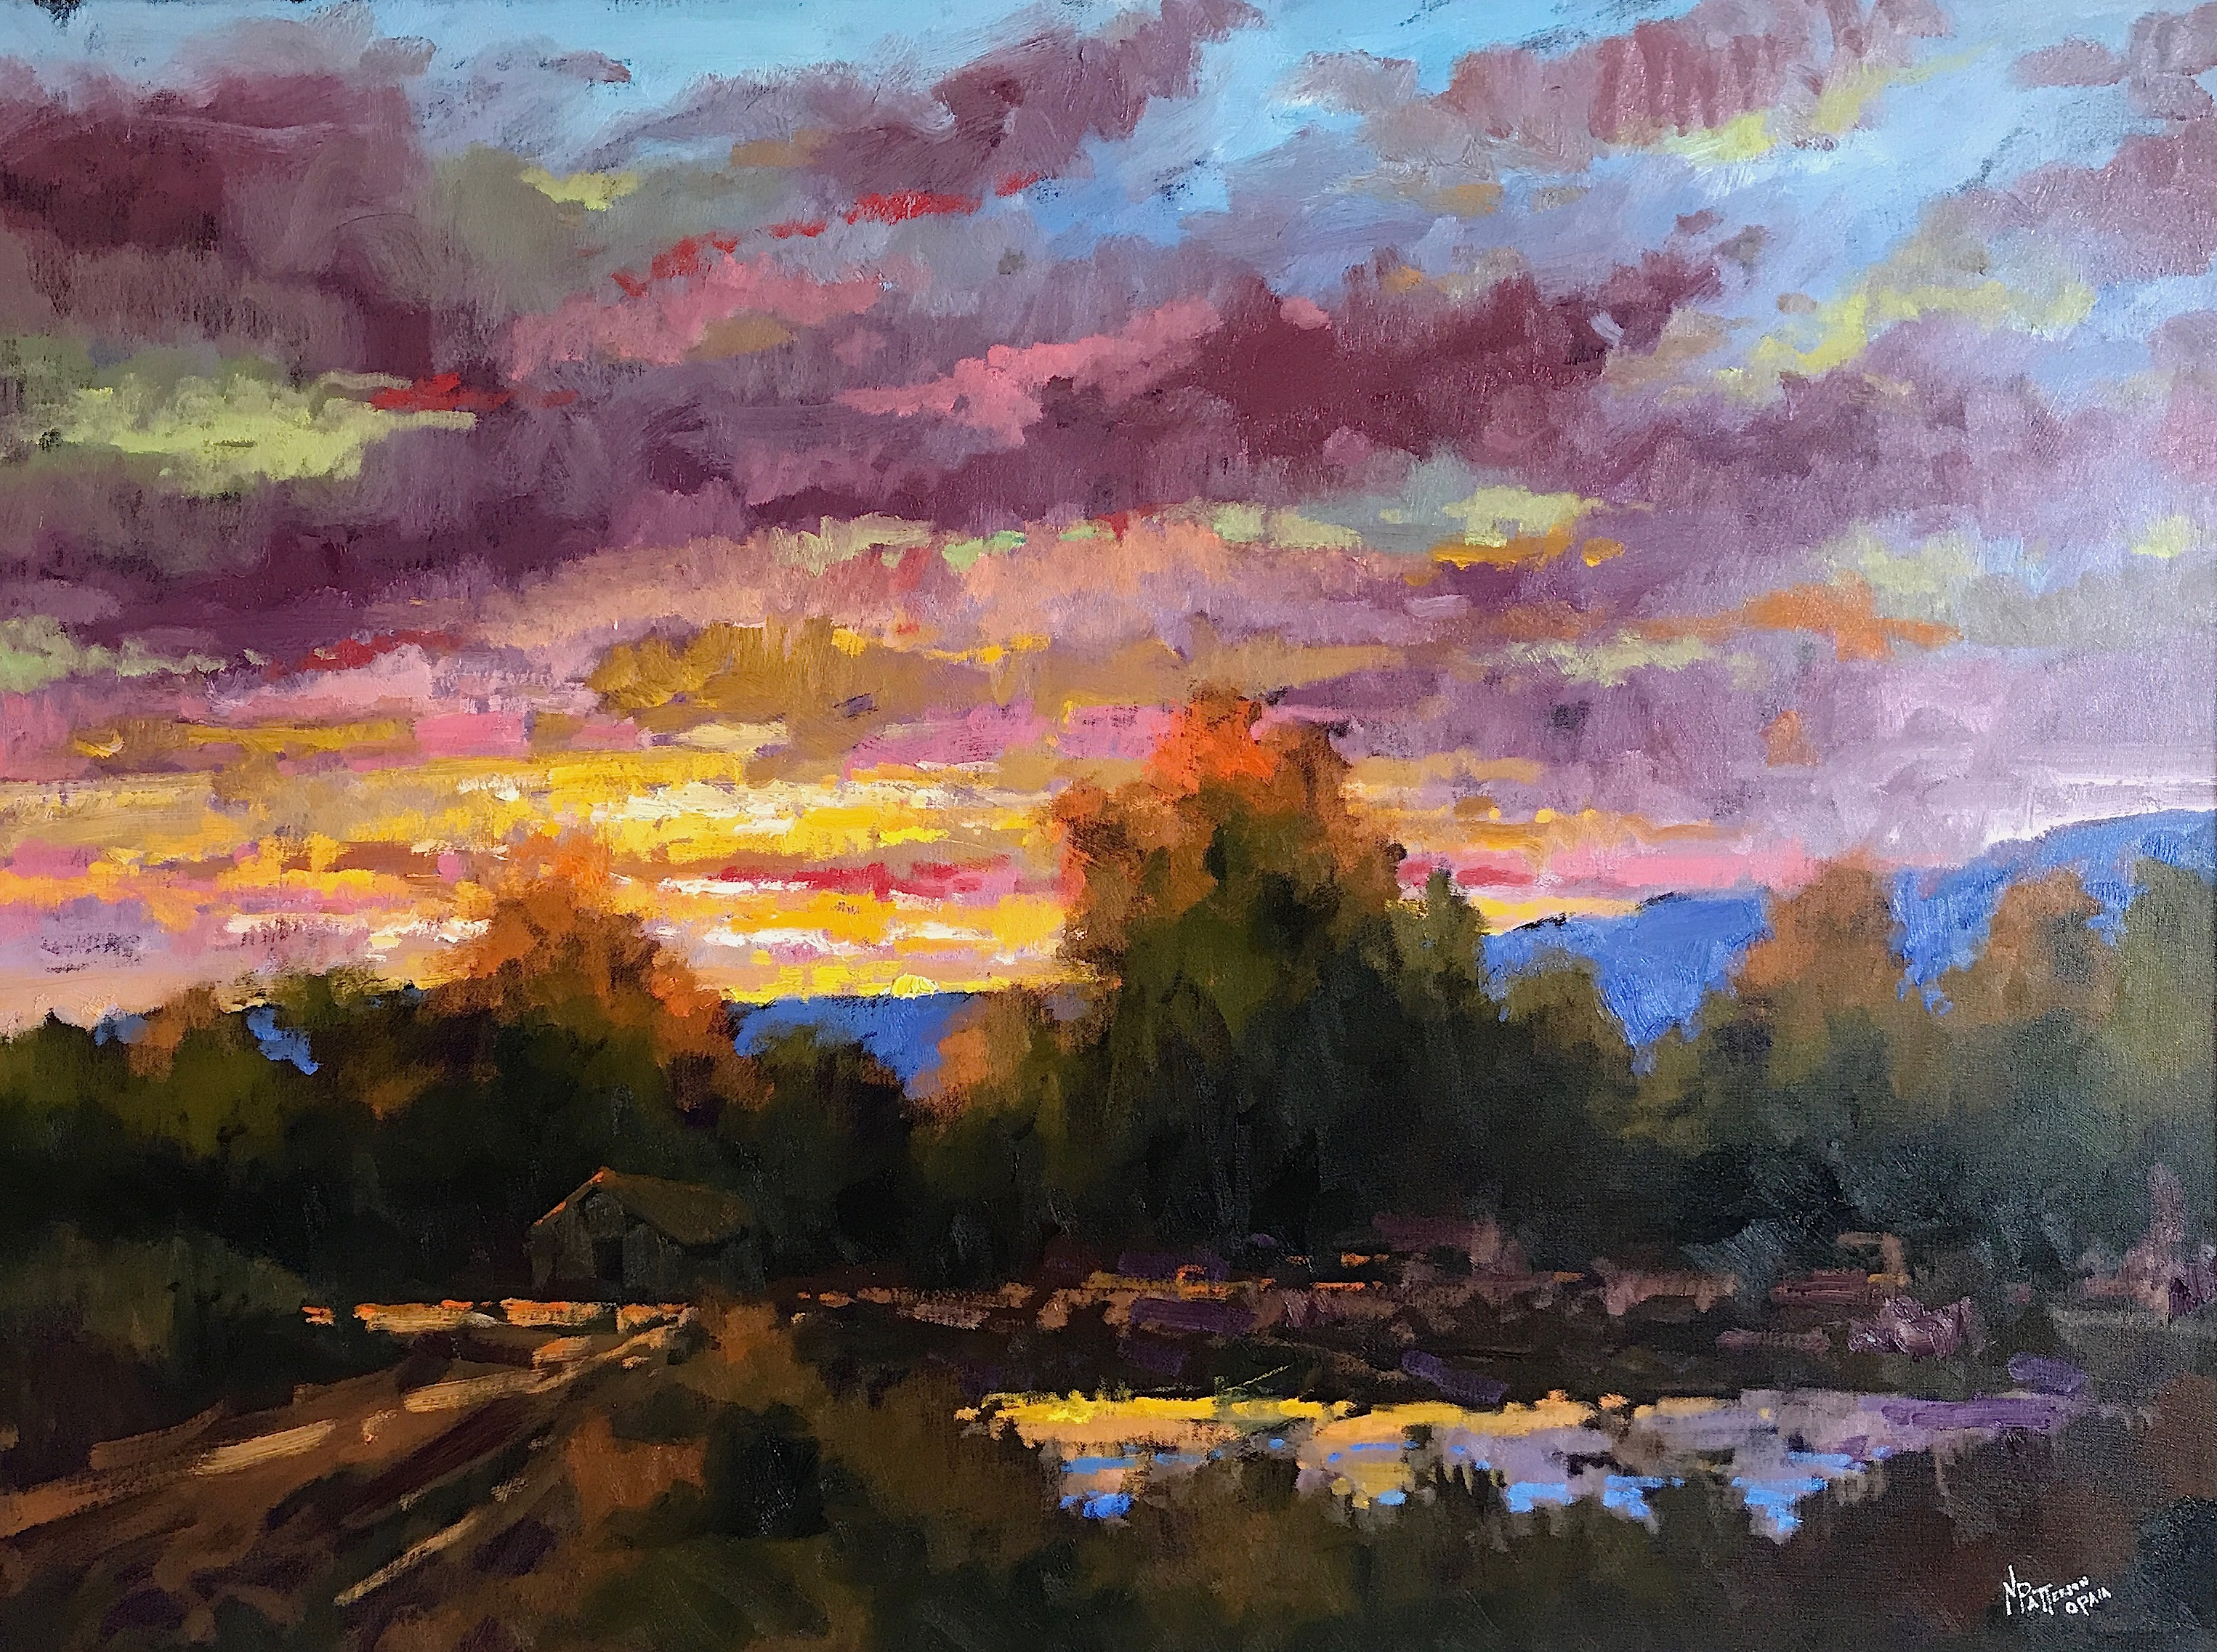 Index Of Images The Wetbrush Watercolor Mossaics Starburst Patterson Neil Evening Light